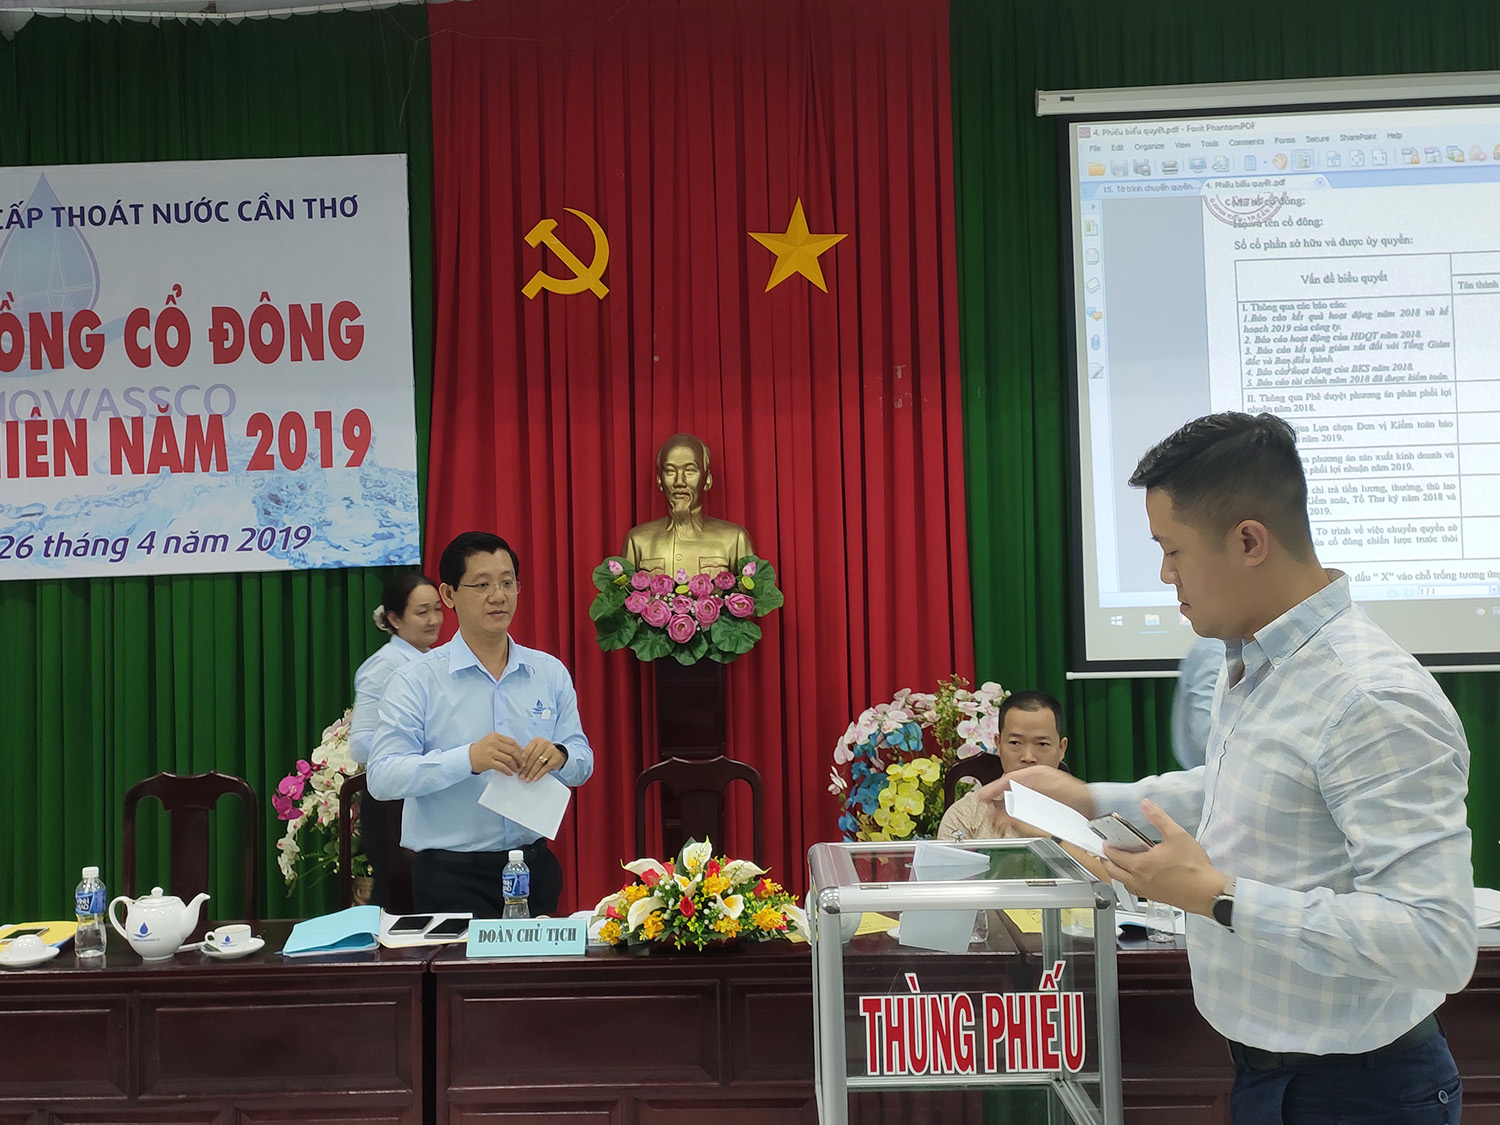 dhdcd 2019 11